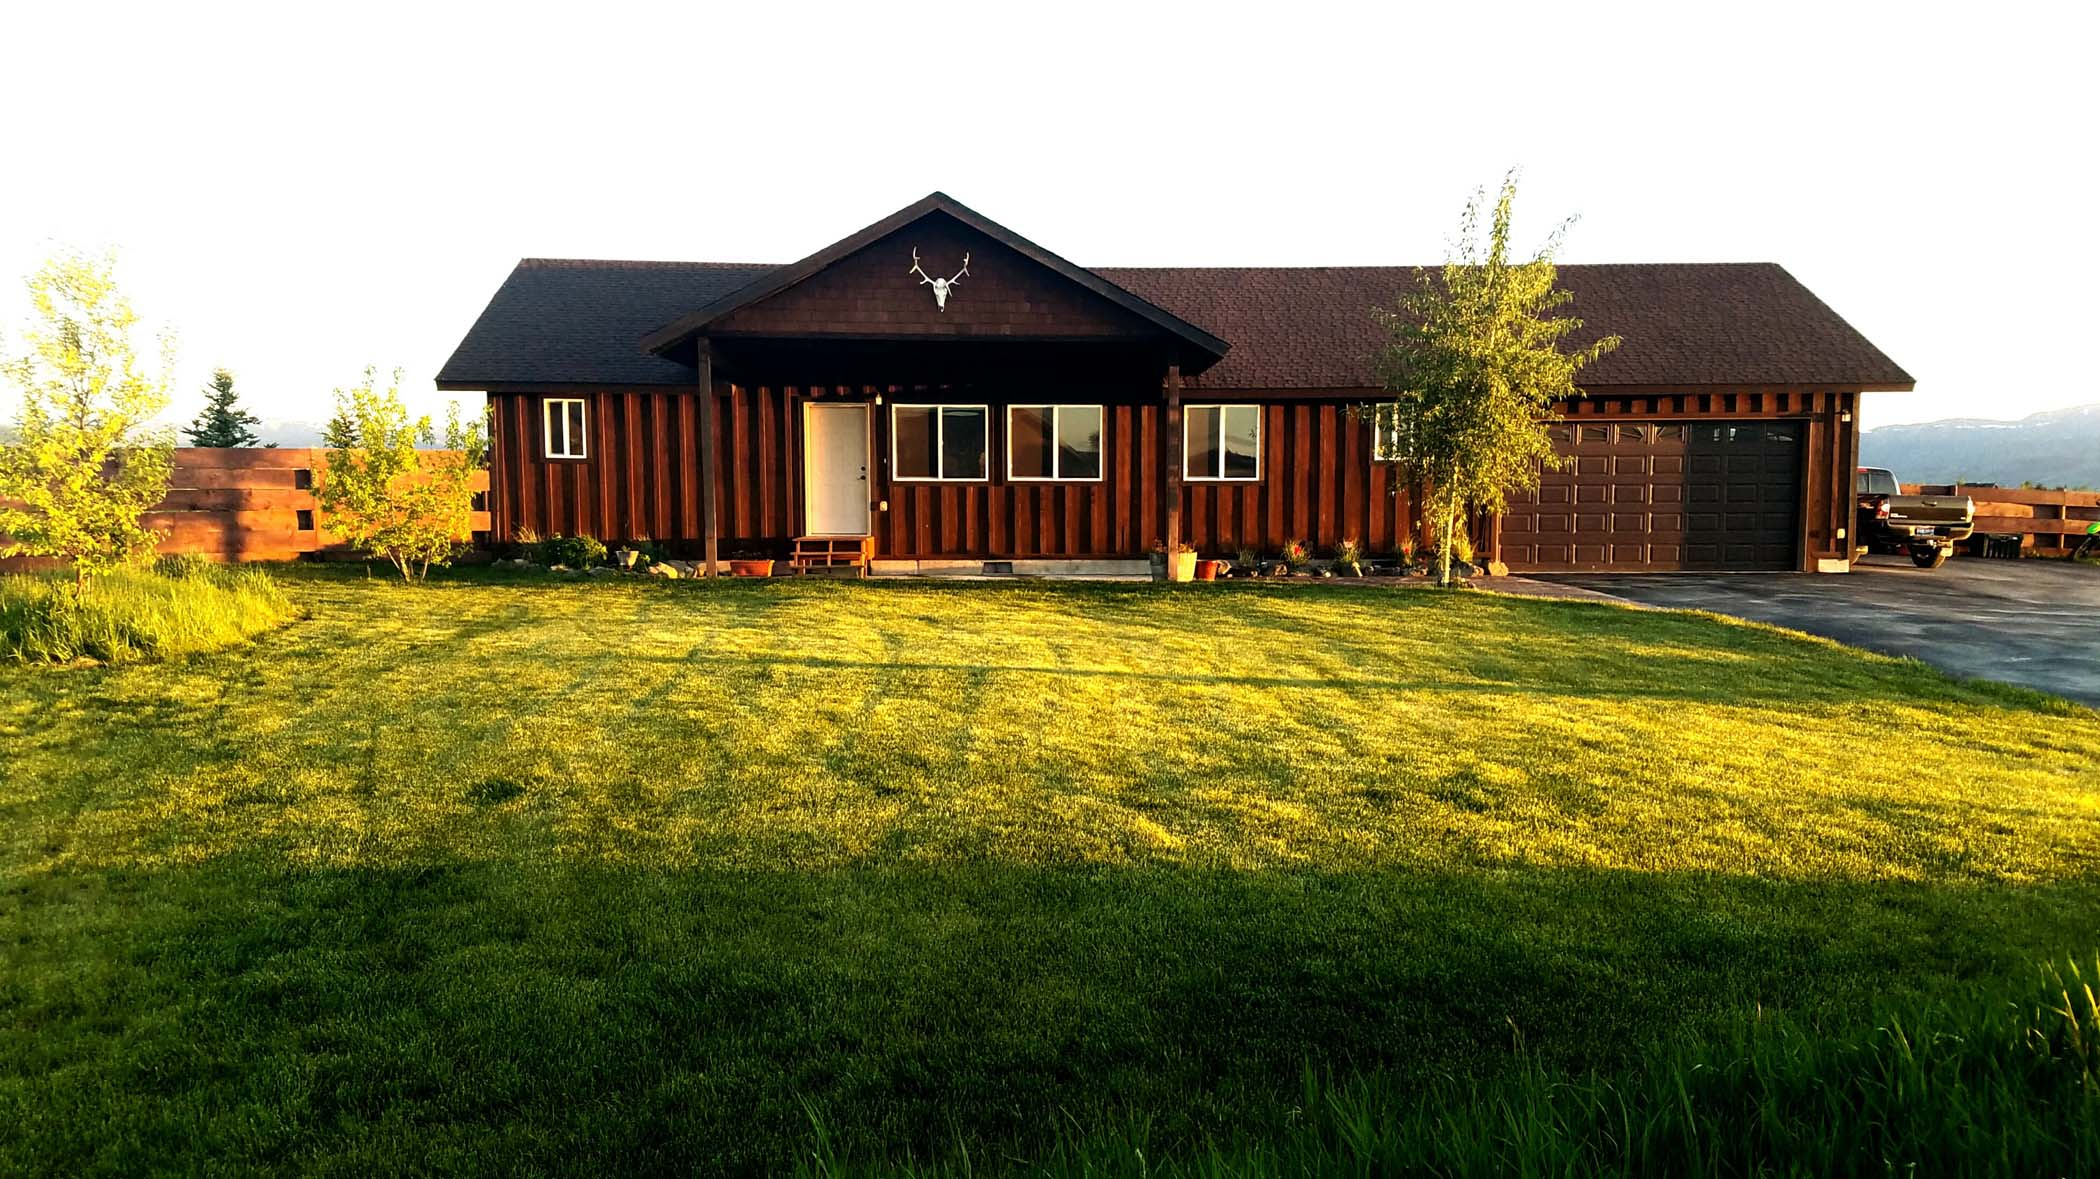 Single Family Home for Sale at Driggs Home - 1 Acre - No CCR's 759 Teague Avenue Driggs, Idaho, 83422 Jackson Hole, United States